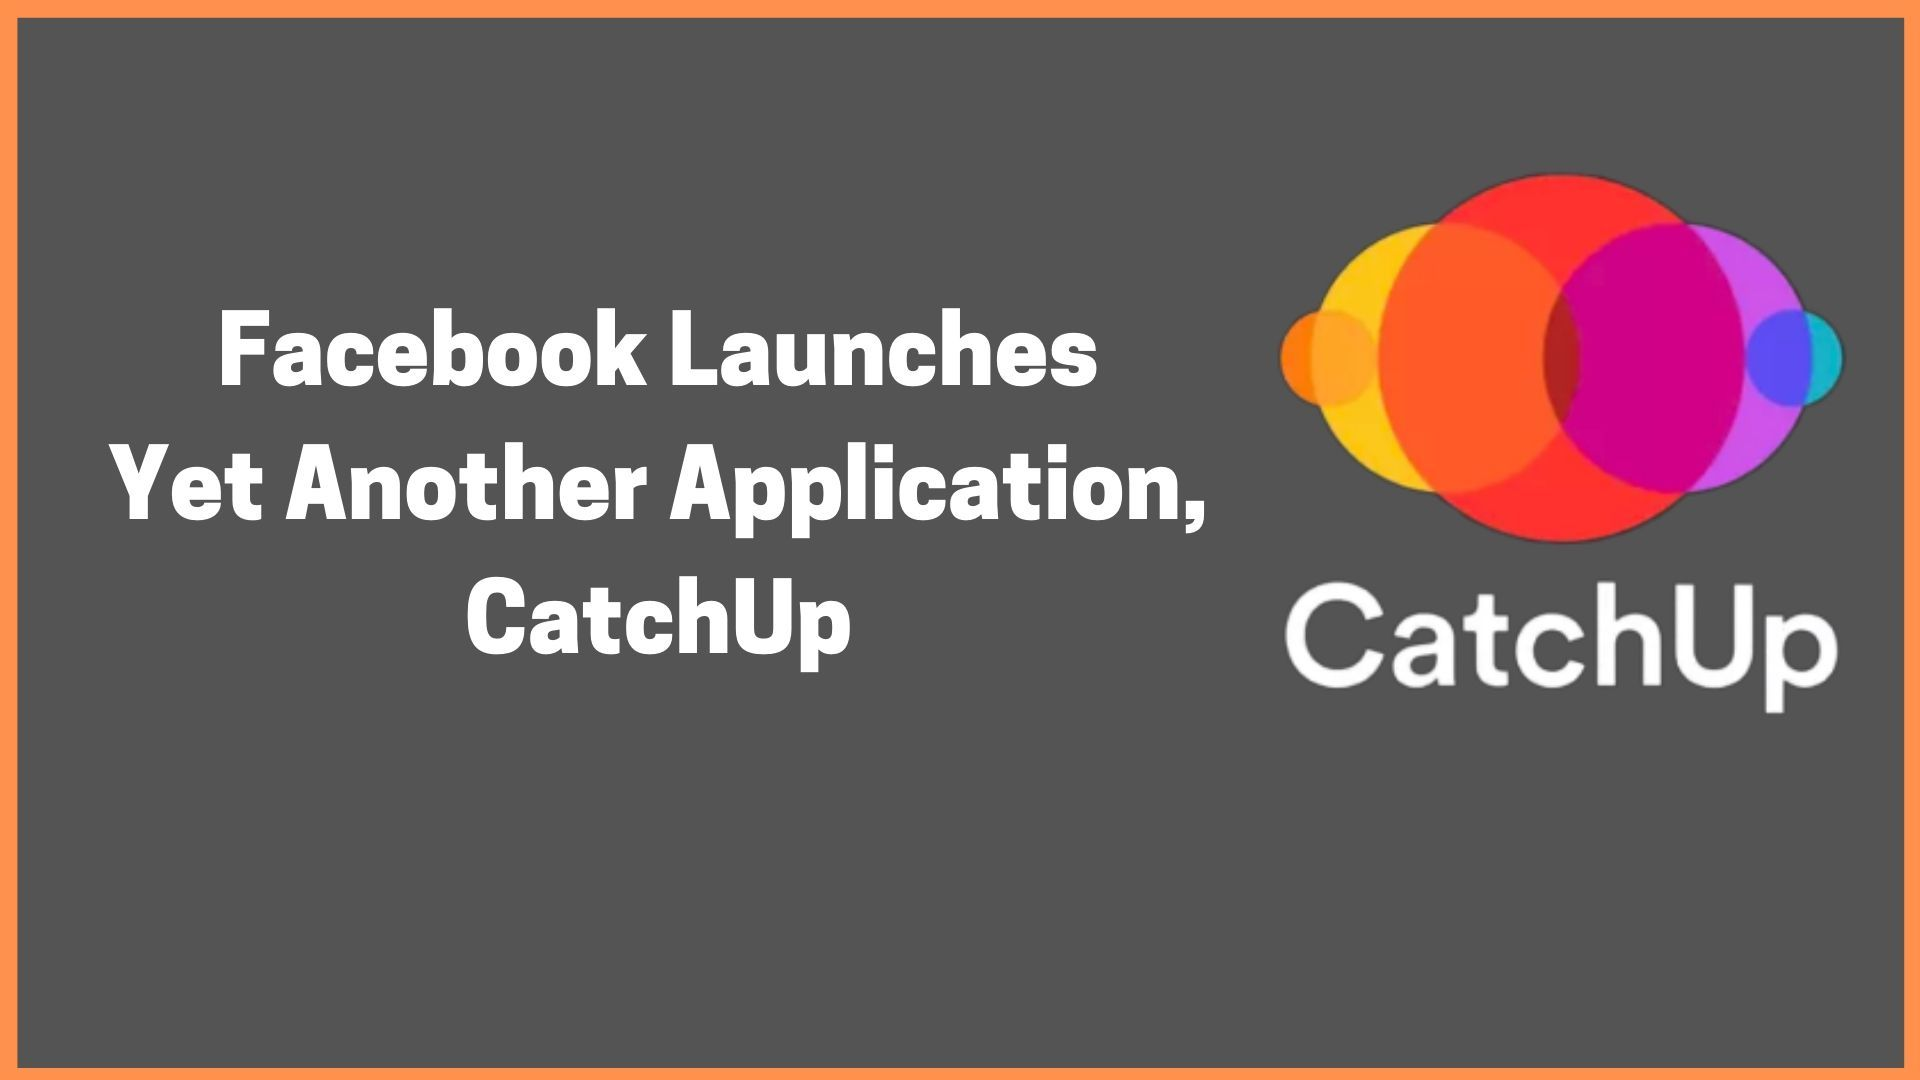 Facebook Launches Yet Another Application, CatchUp